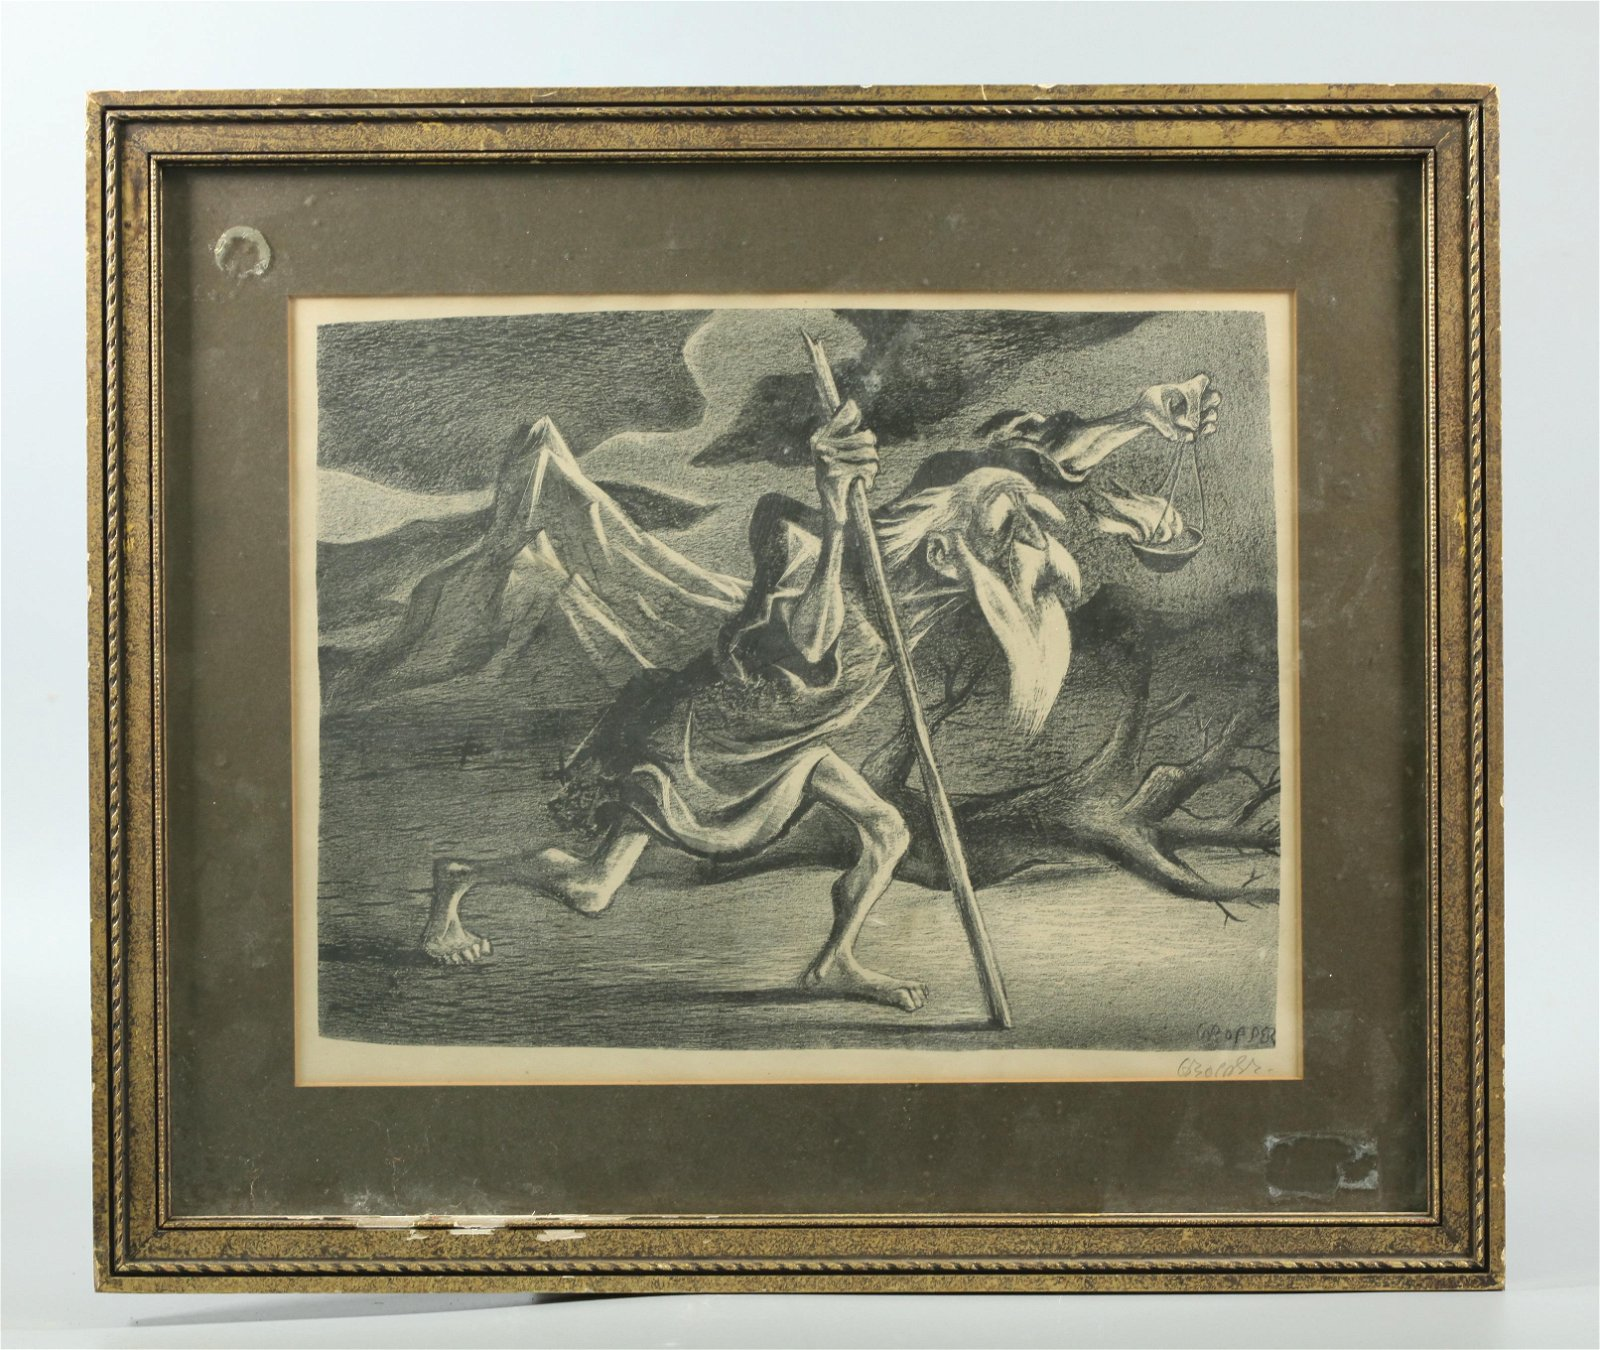 William Gropper; Signed Lithograph, Diogenes